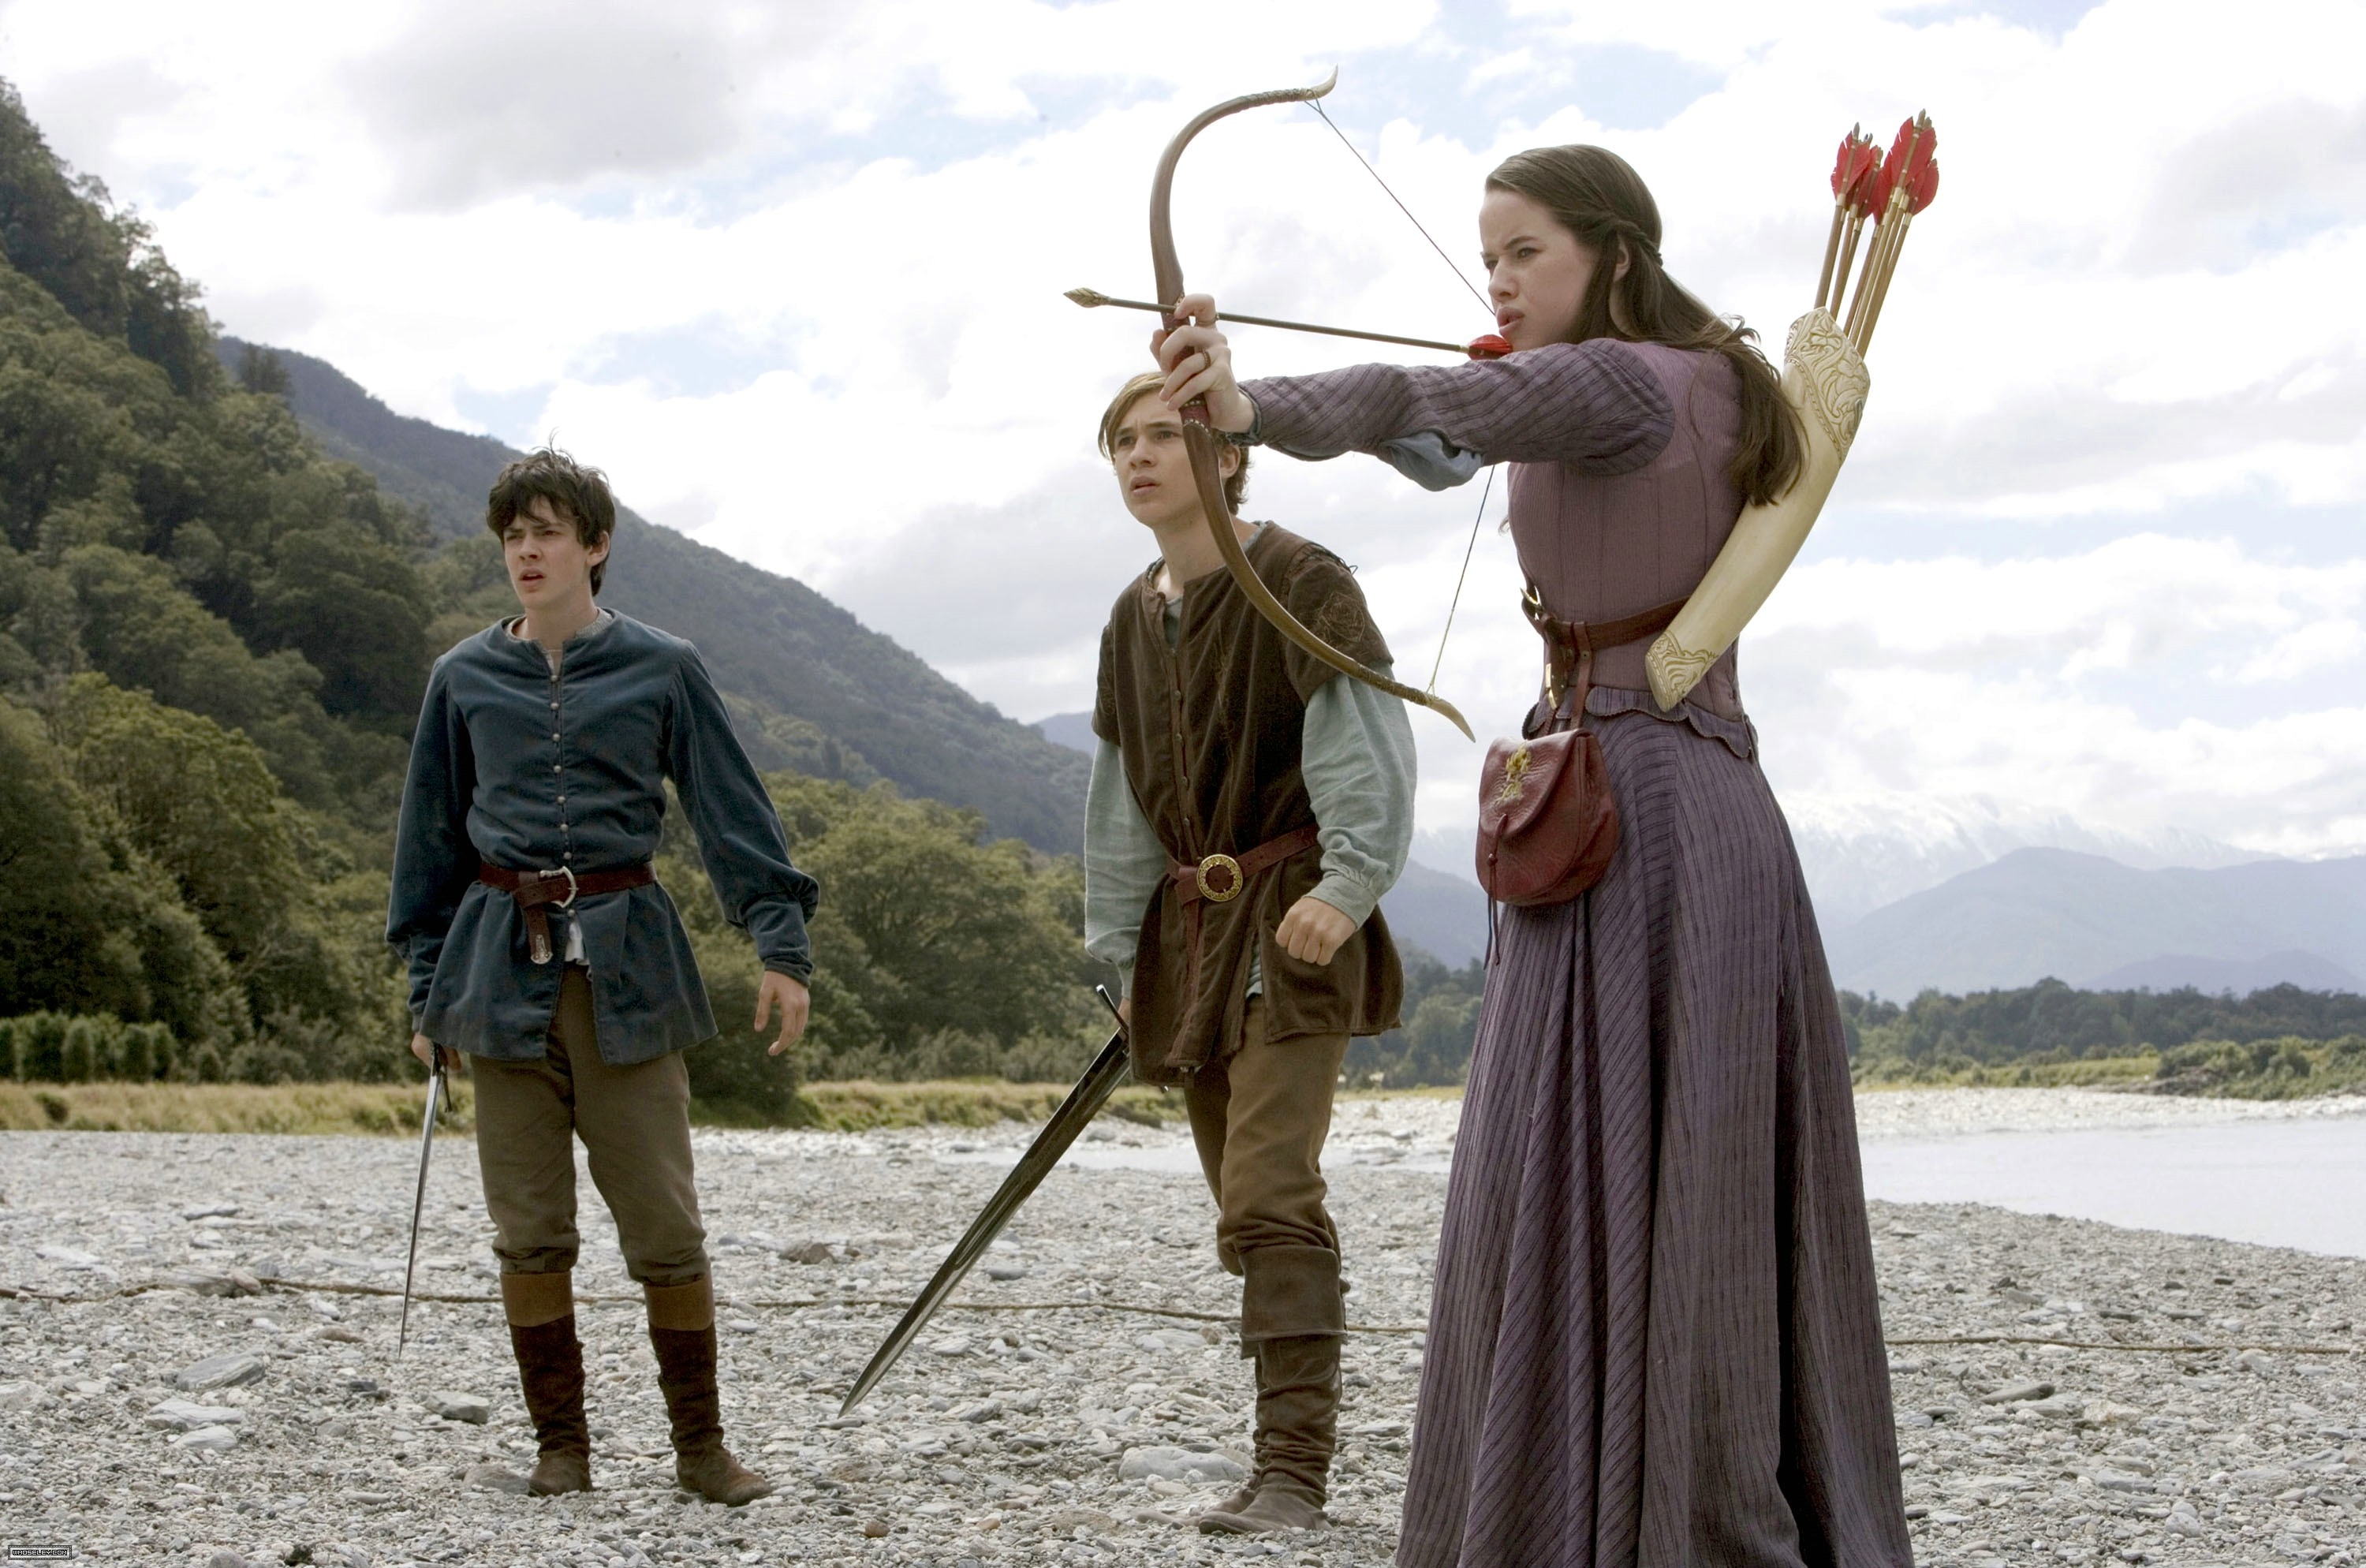 Susan Pevensey - the most controversial character in the novel The Chronicles of Narnia 11